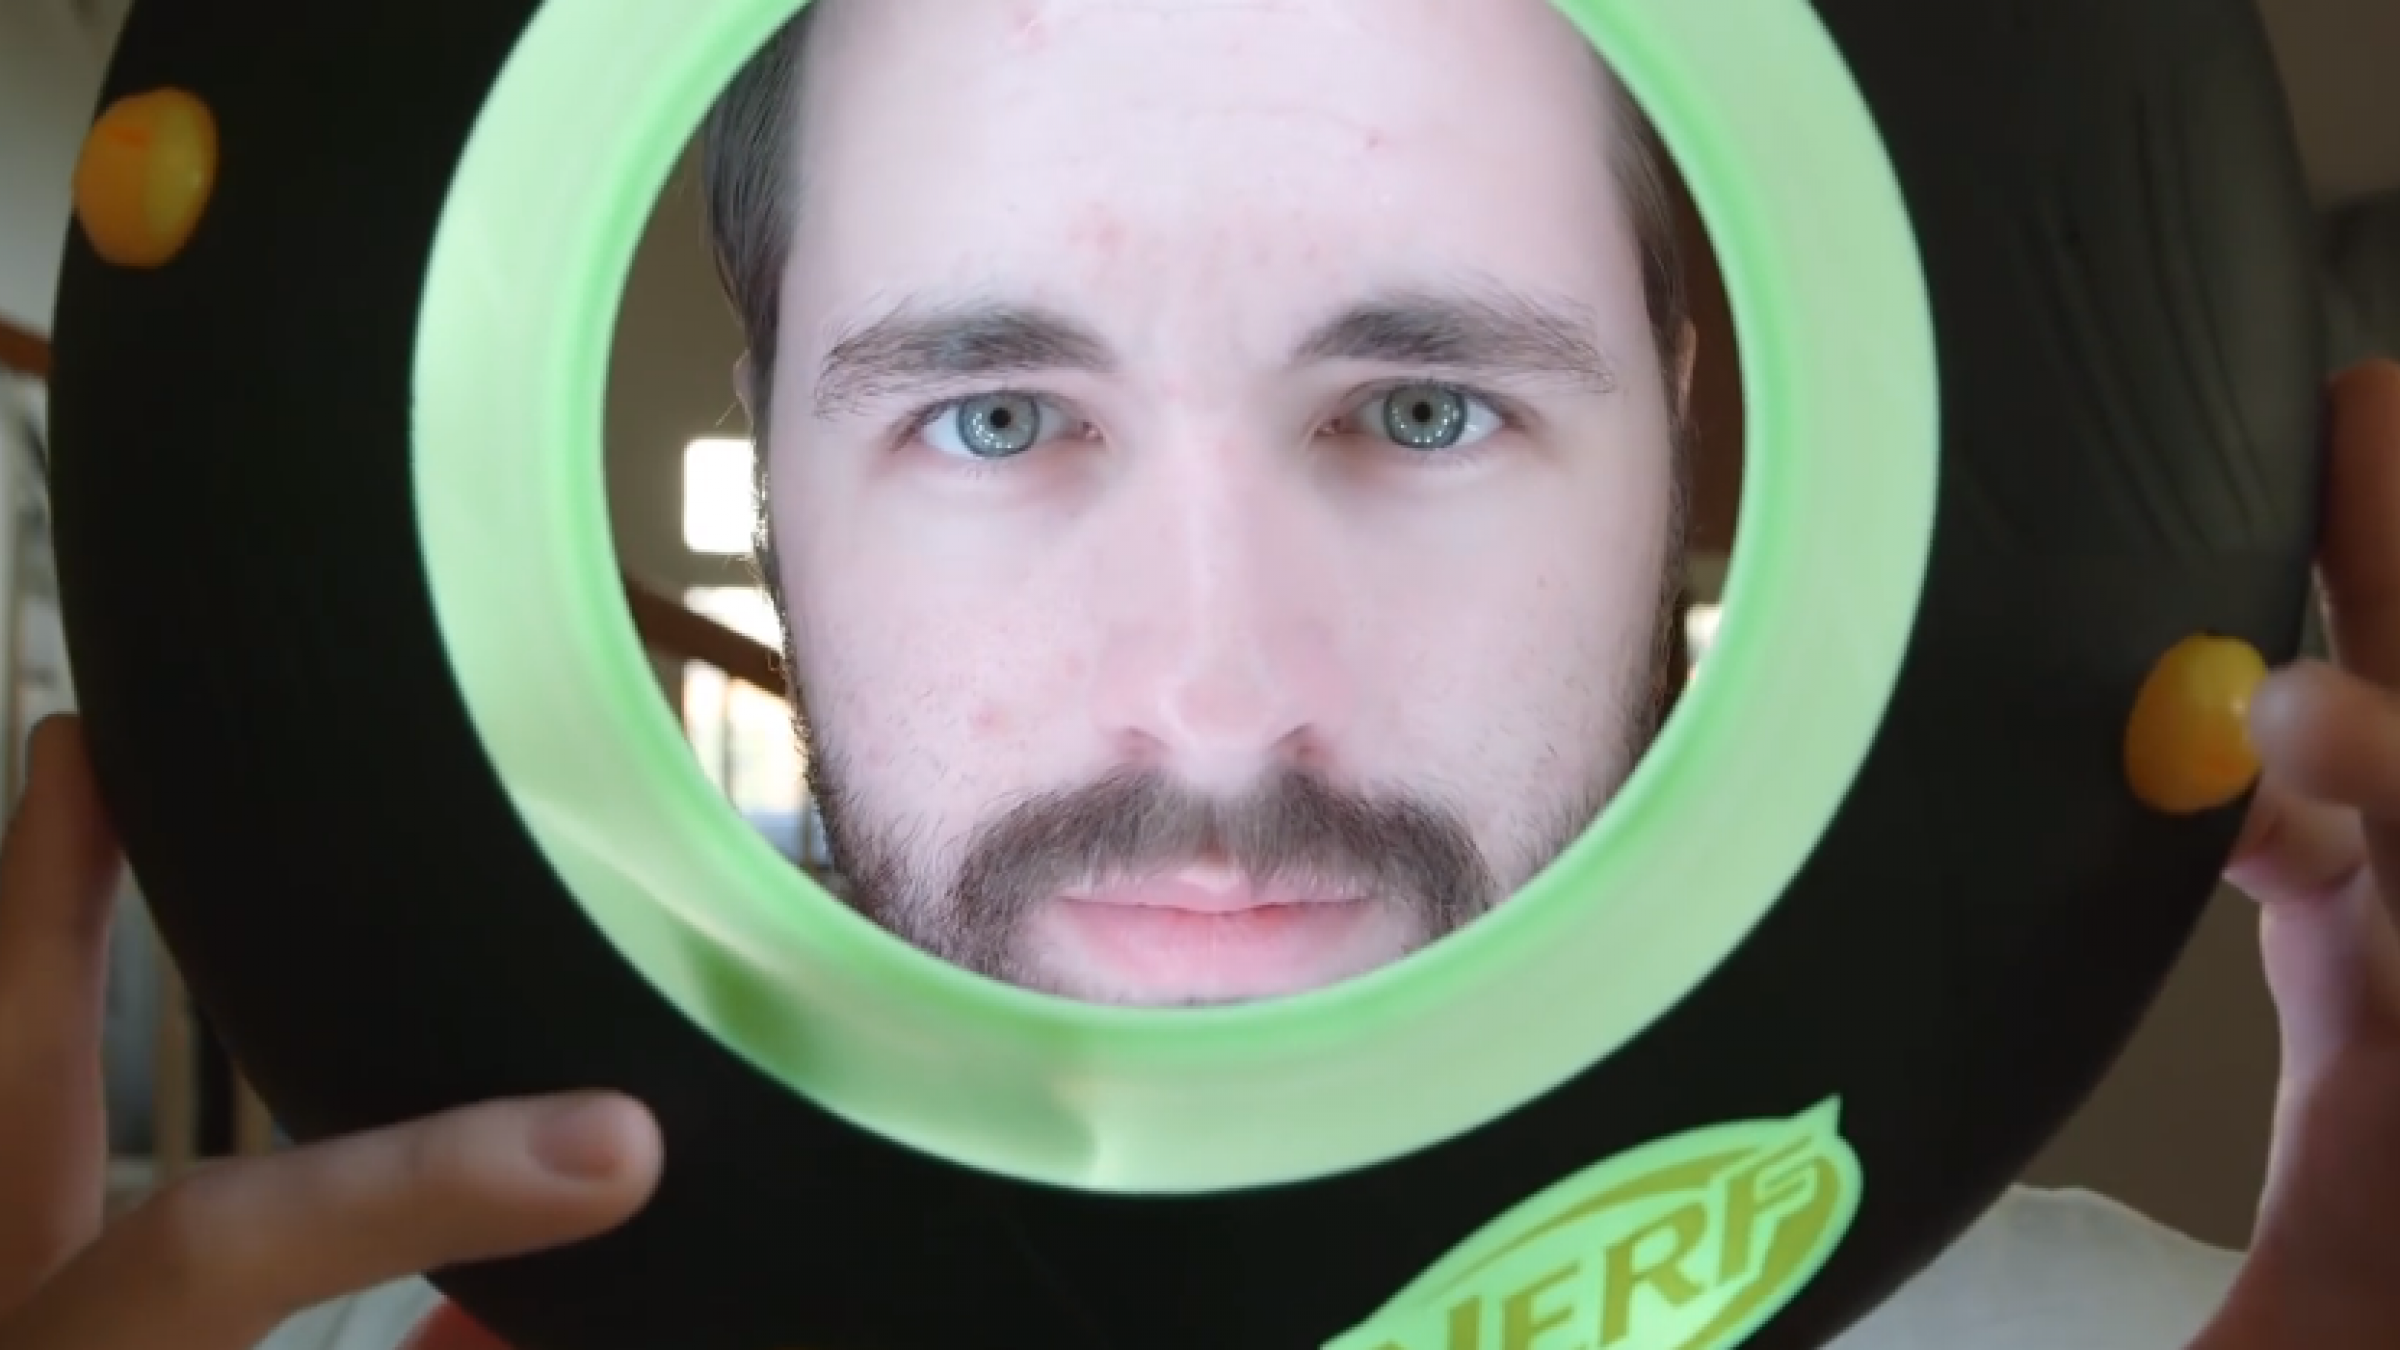 Tutorial: Make Your Own $30 Ringlight Using LED Light Strips & a Frisbee